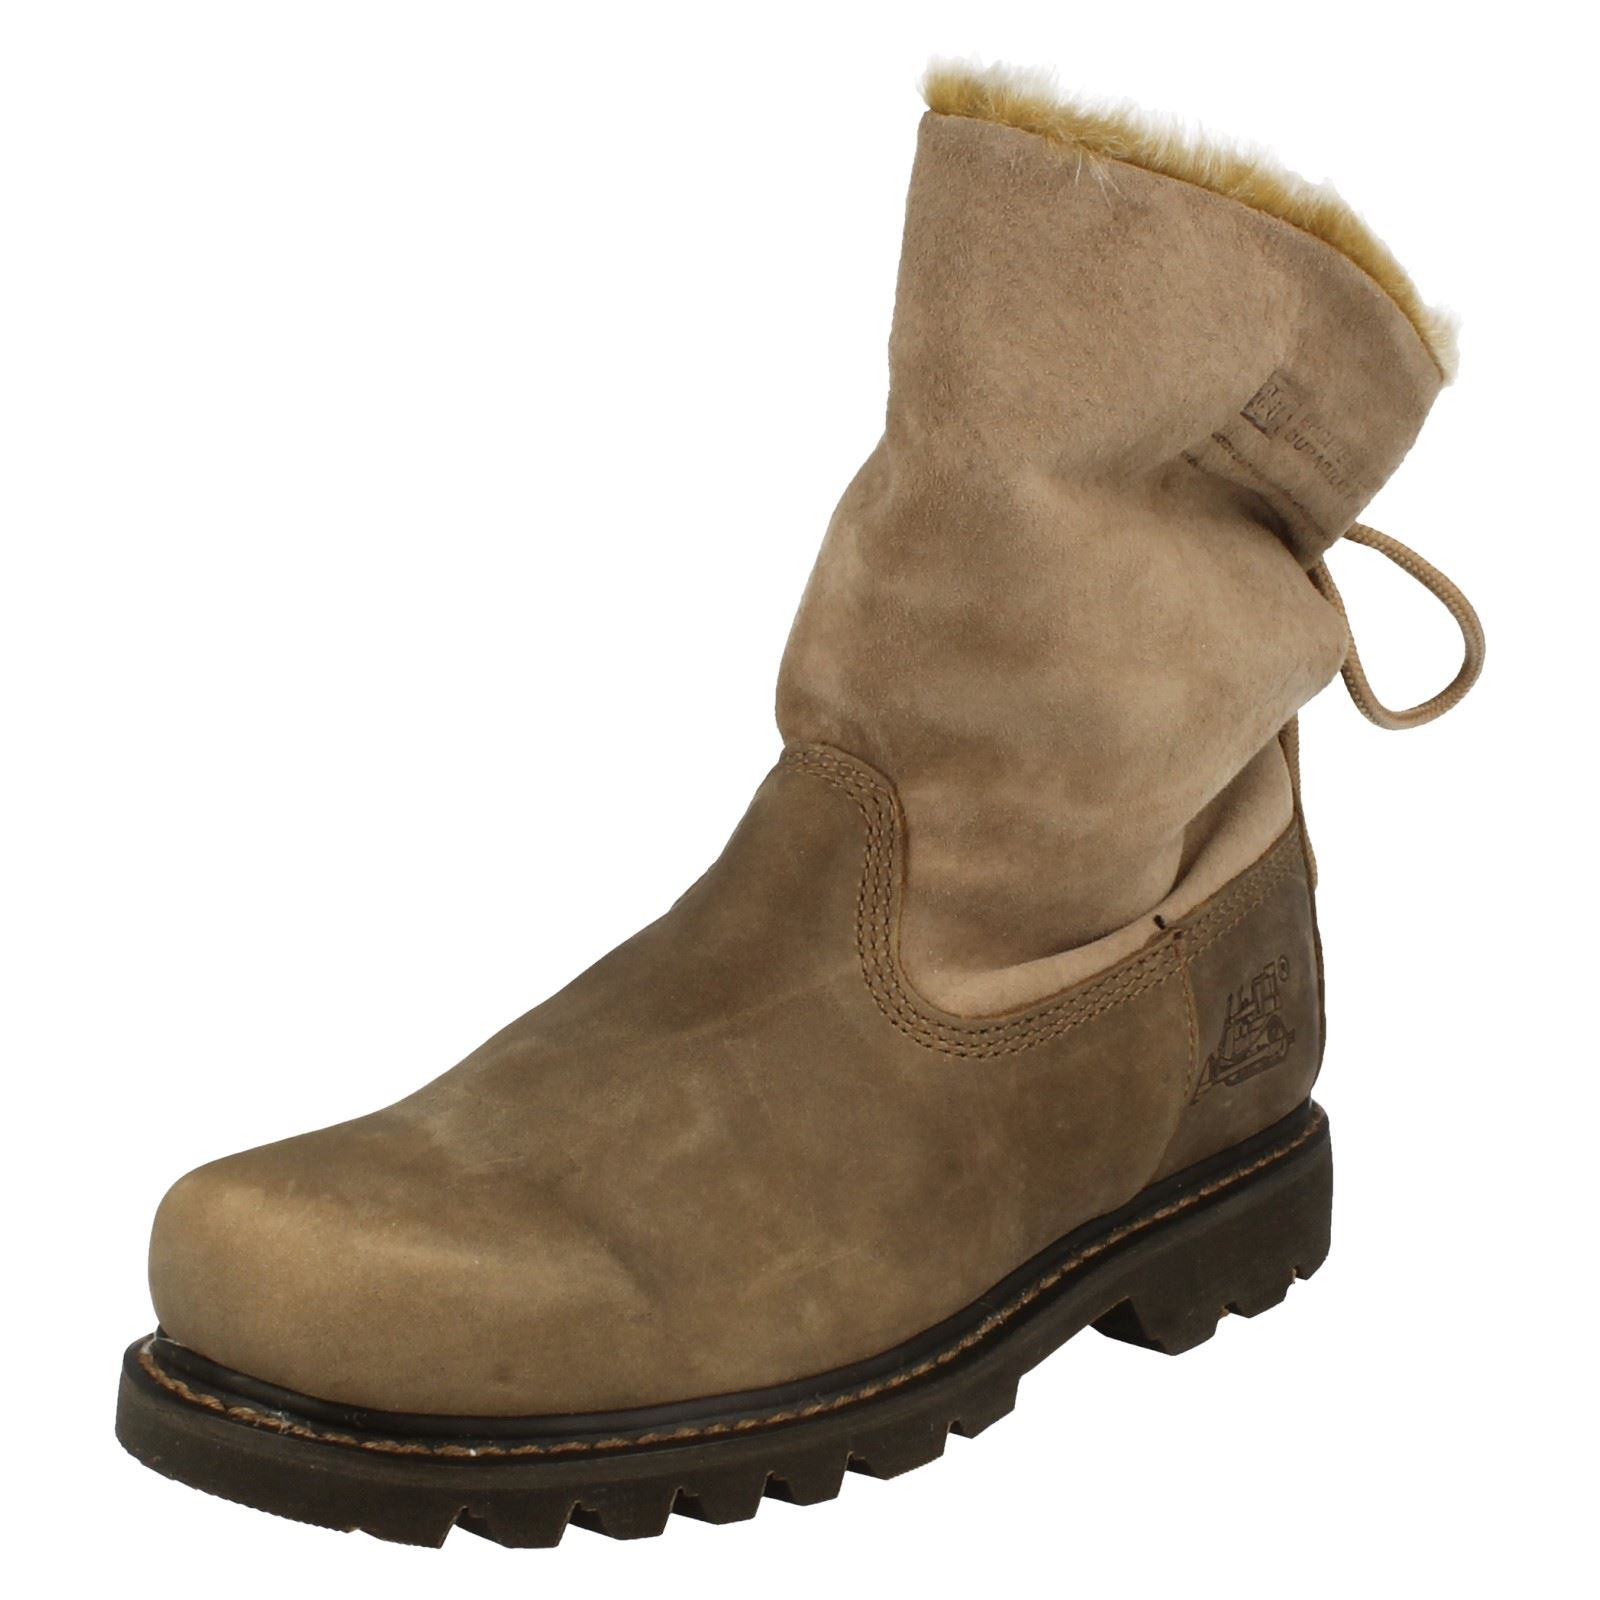 Ladies Caterpillar Ankle Boots Bruiser Scrunch; Picture 2 of 10 ...